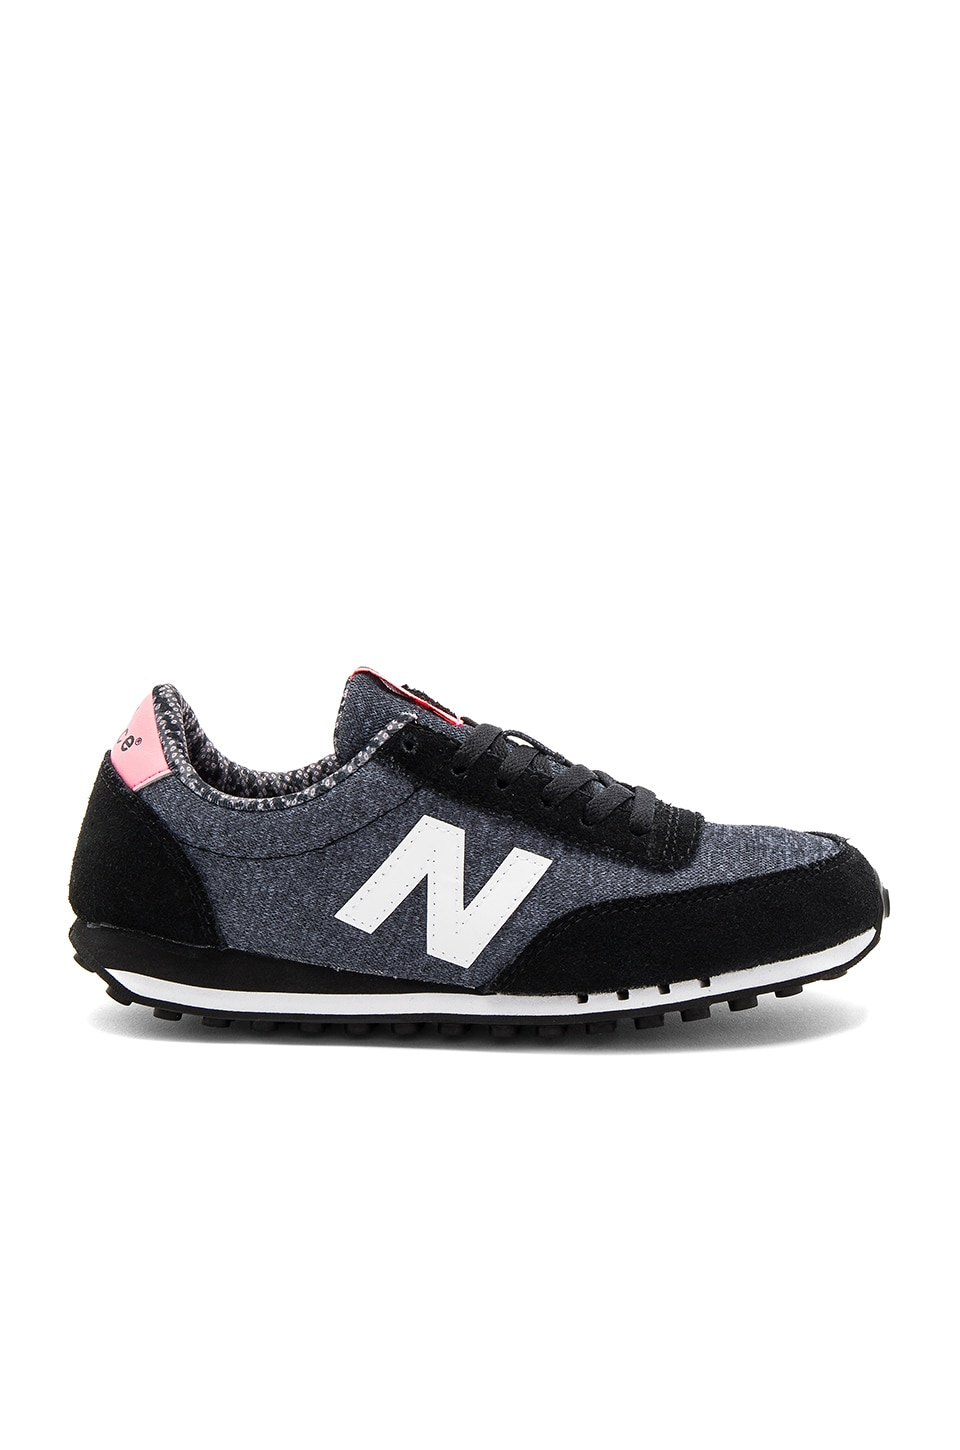 New Balance Optic Pop Sneaker in Black & White